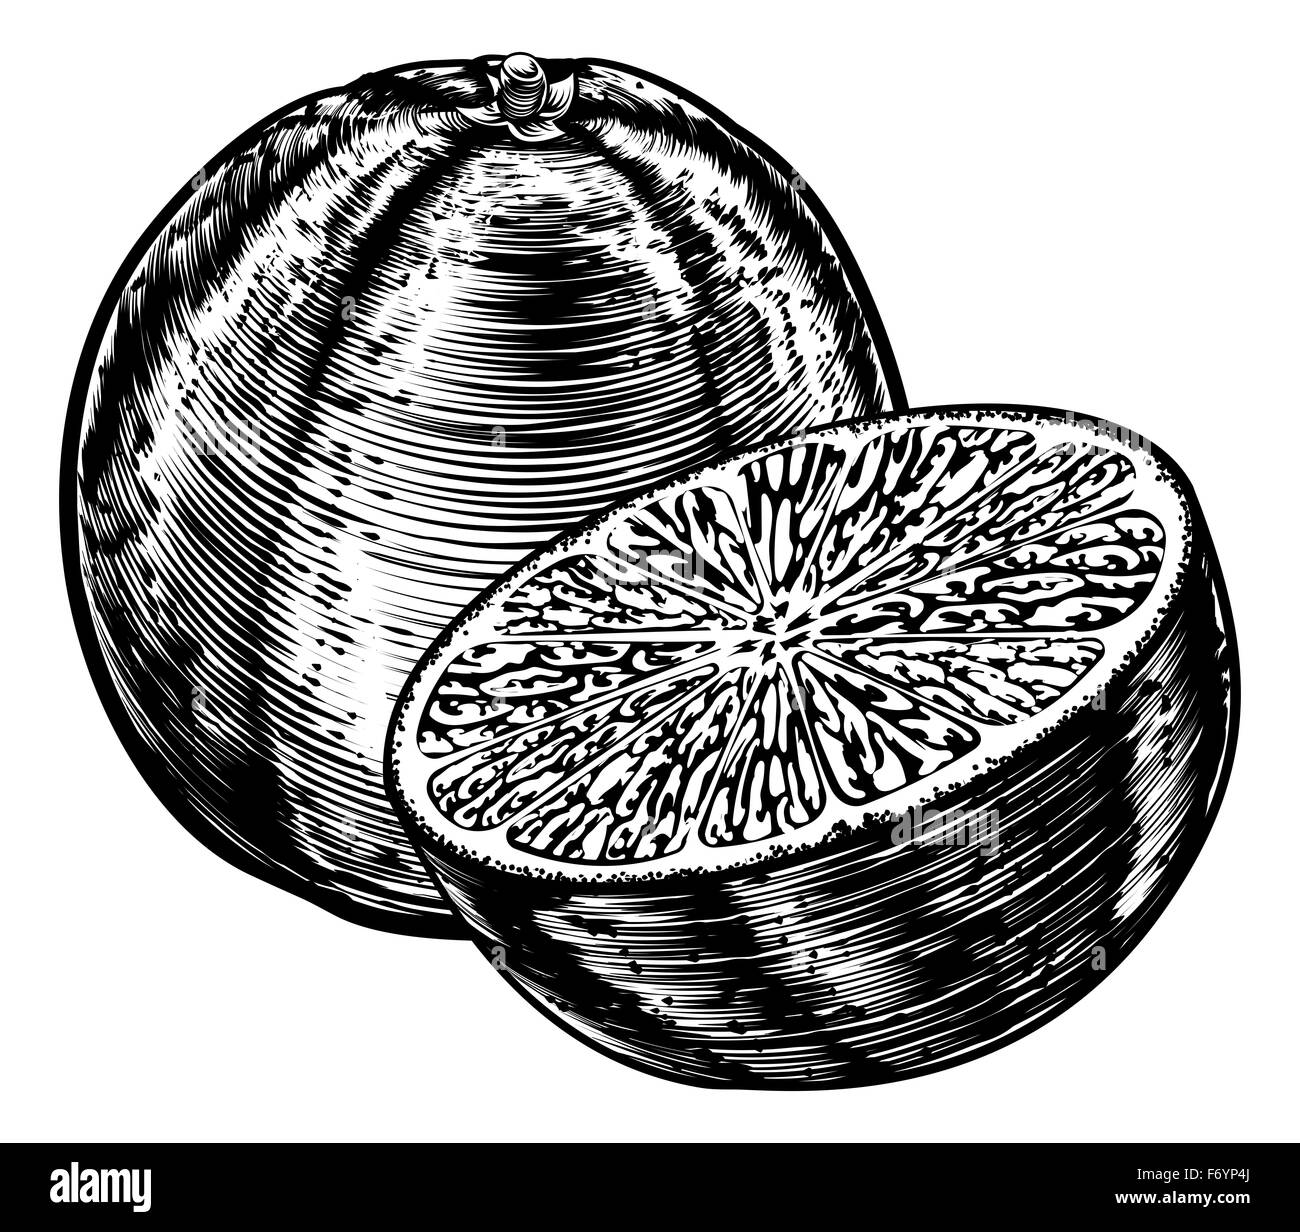 An original illustration of a sliced orange fruit in a vintage woodcut or woodblock style - Stock Image